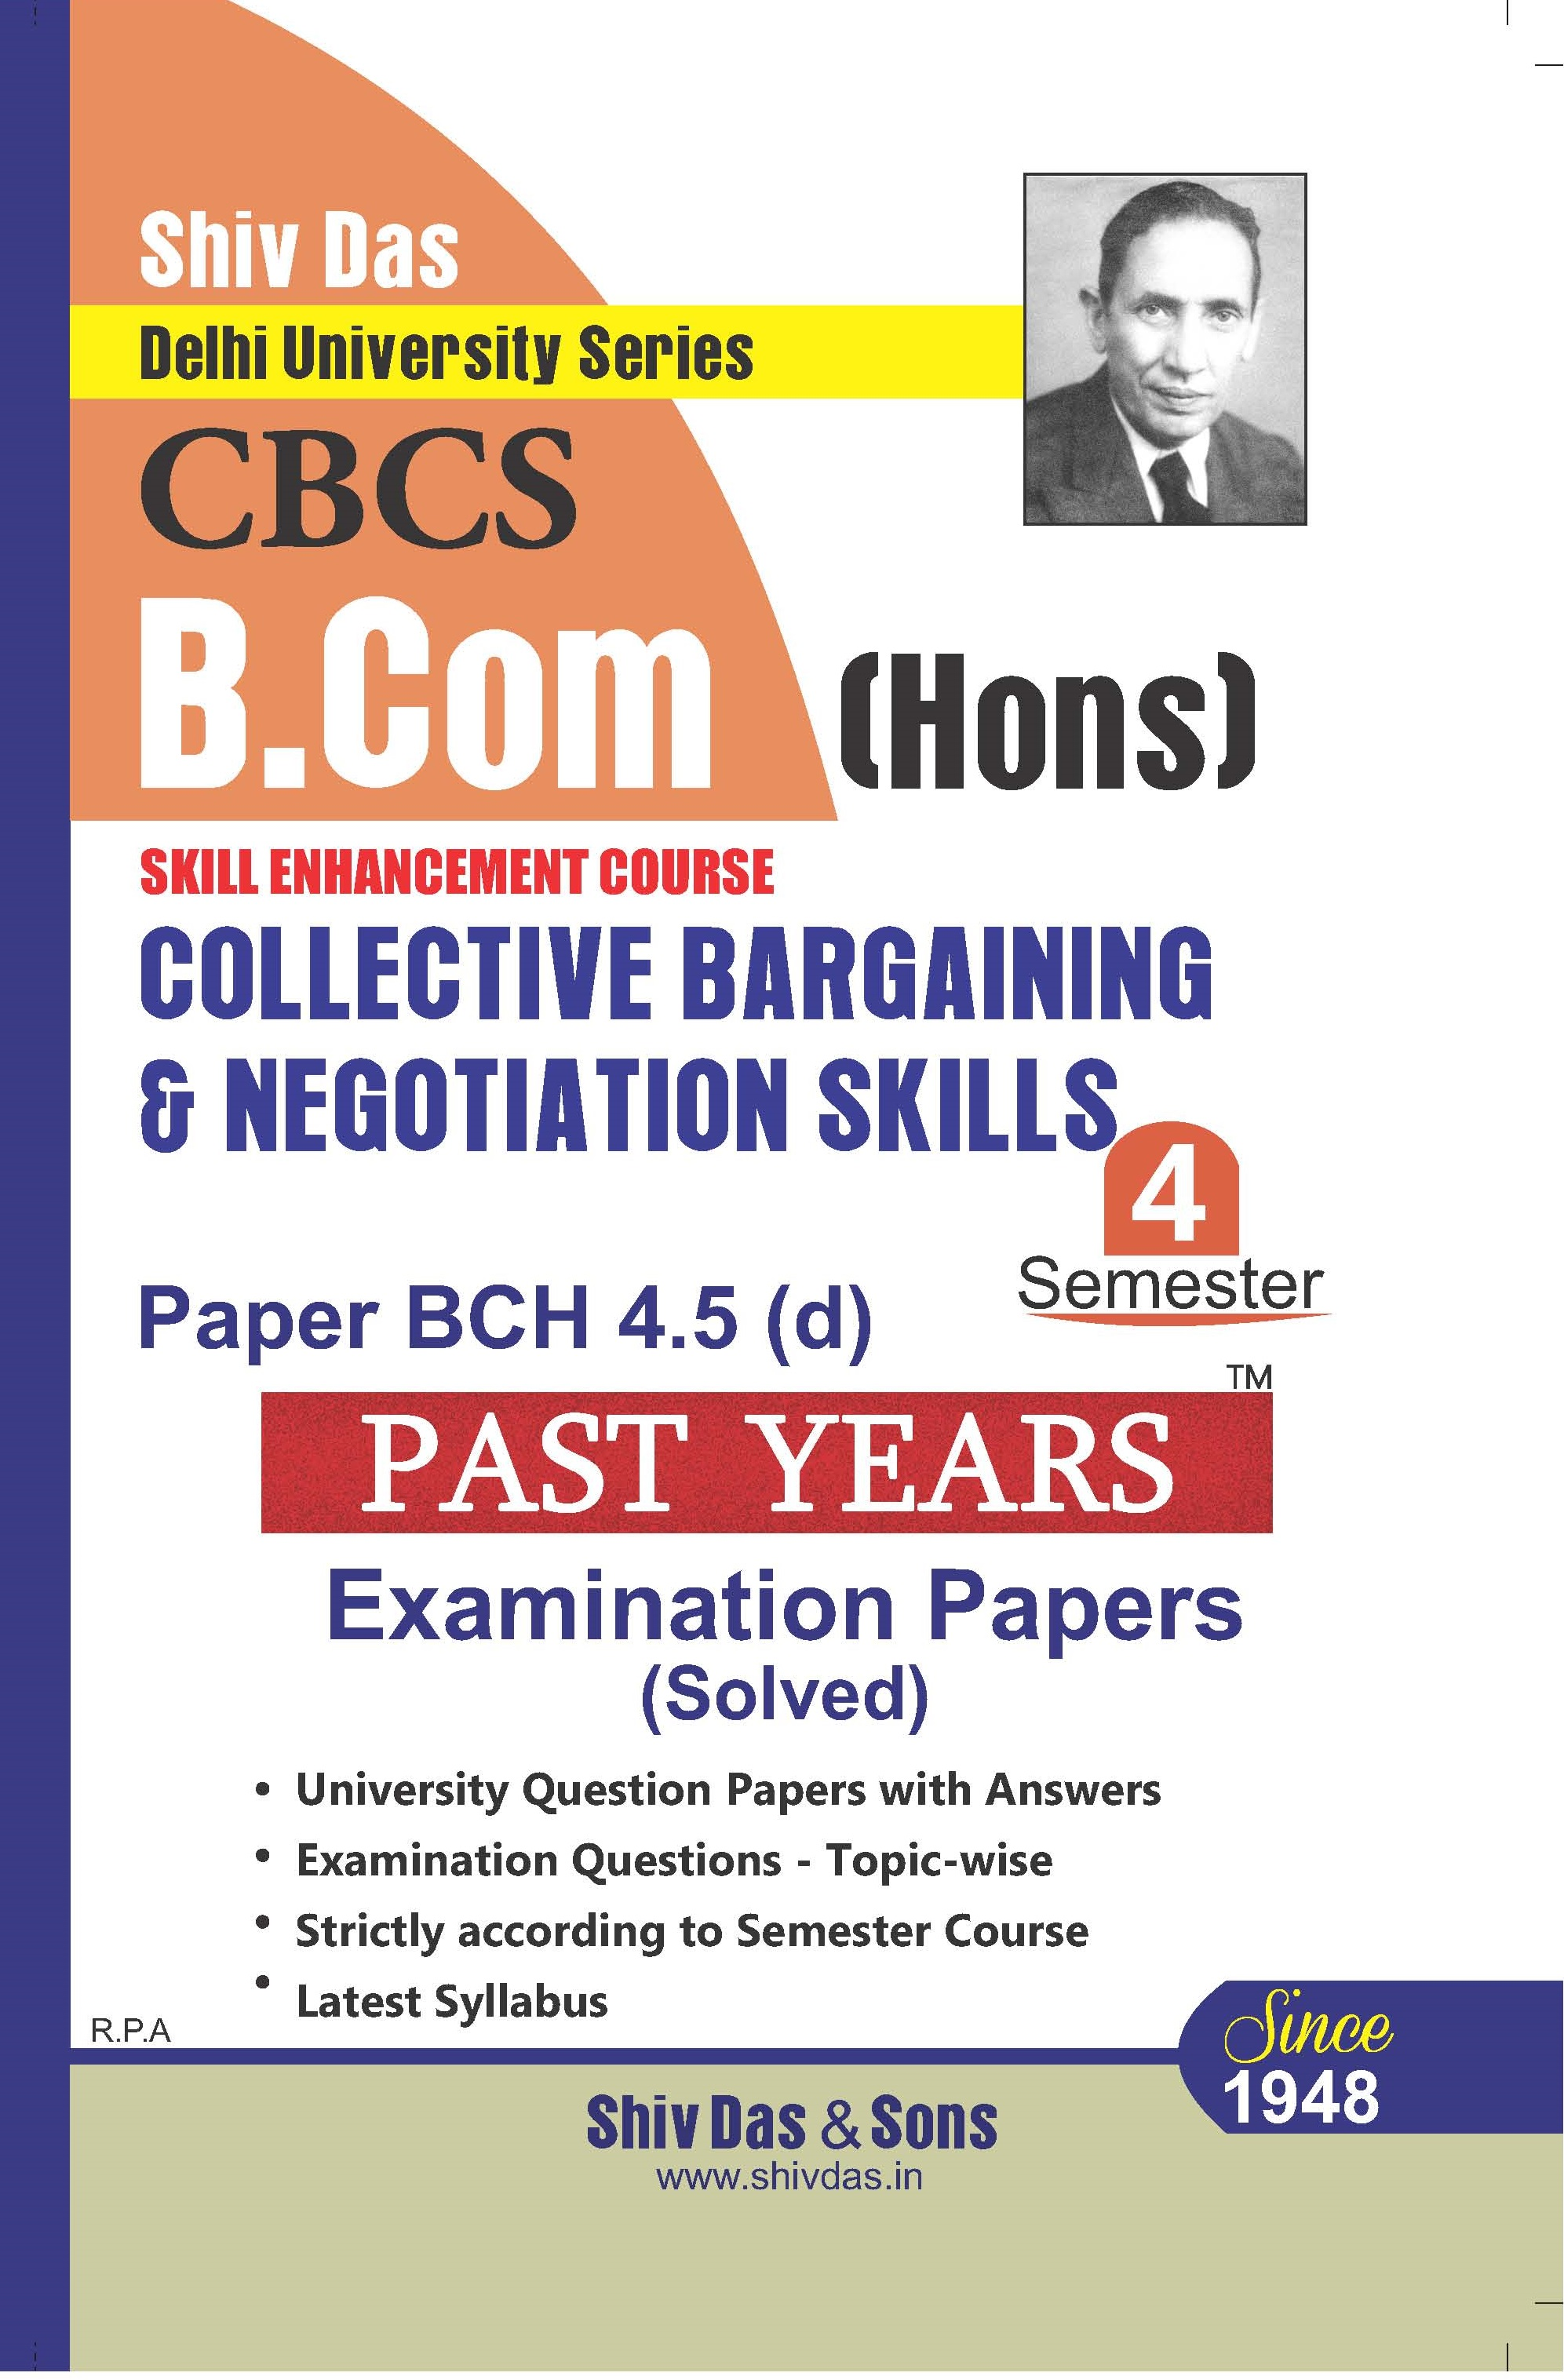 Collective Bargaining and Negotiation Skills for B.Com Hons Semester 4 for Delhi University by Shiv Das